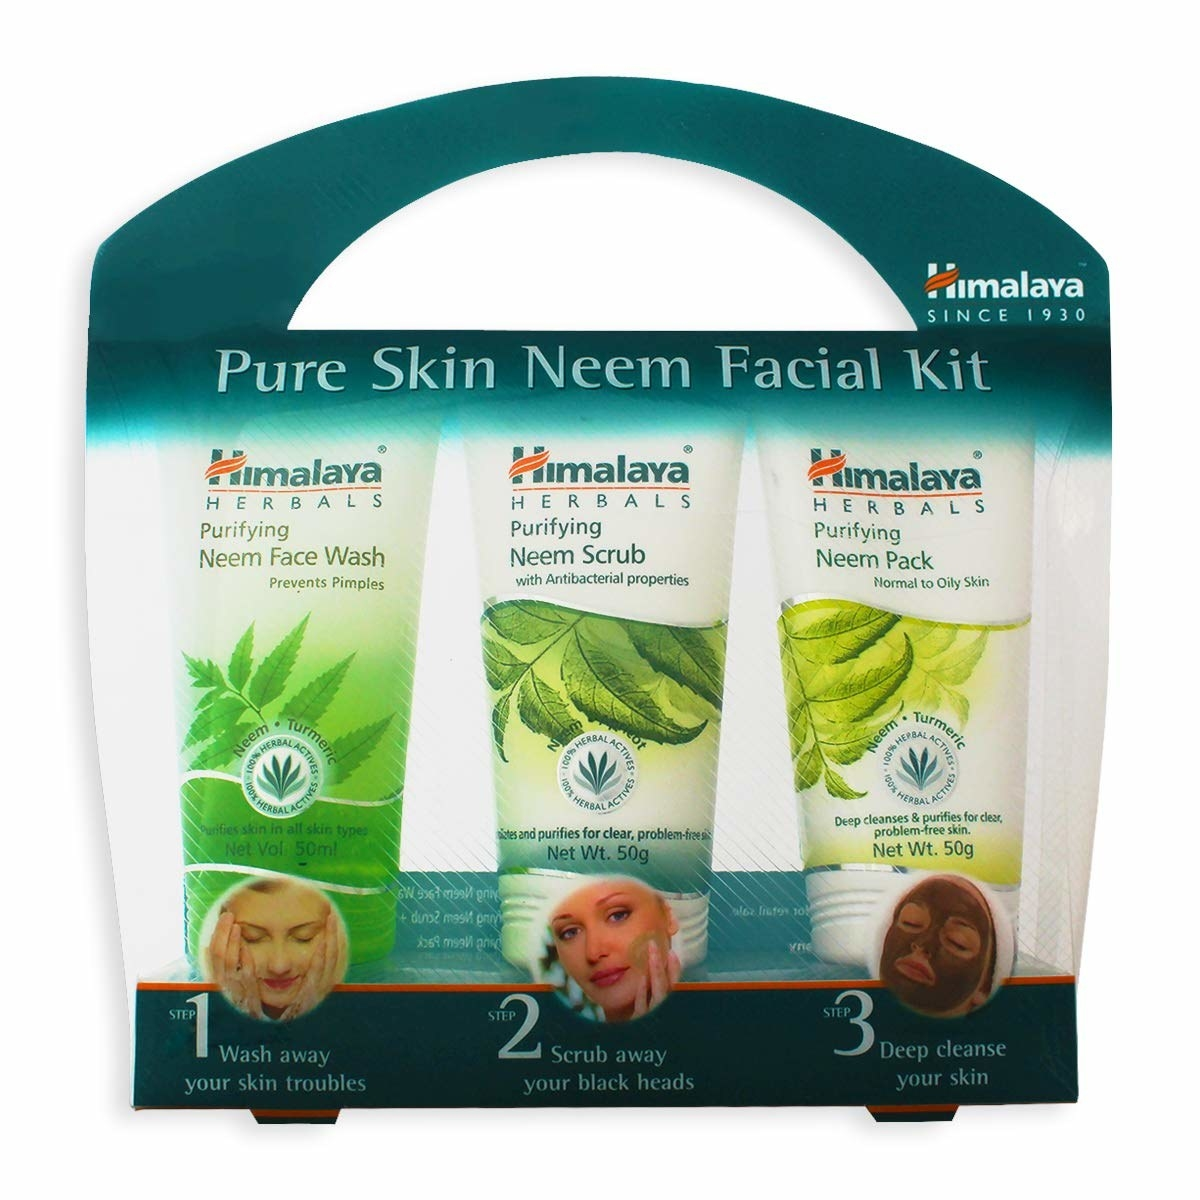 3 neem facial products in a box